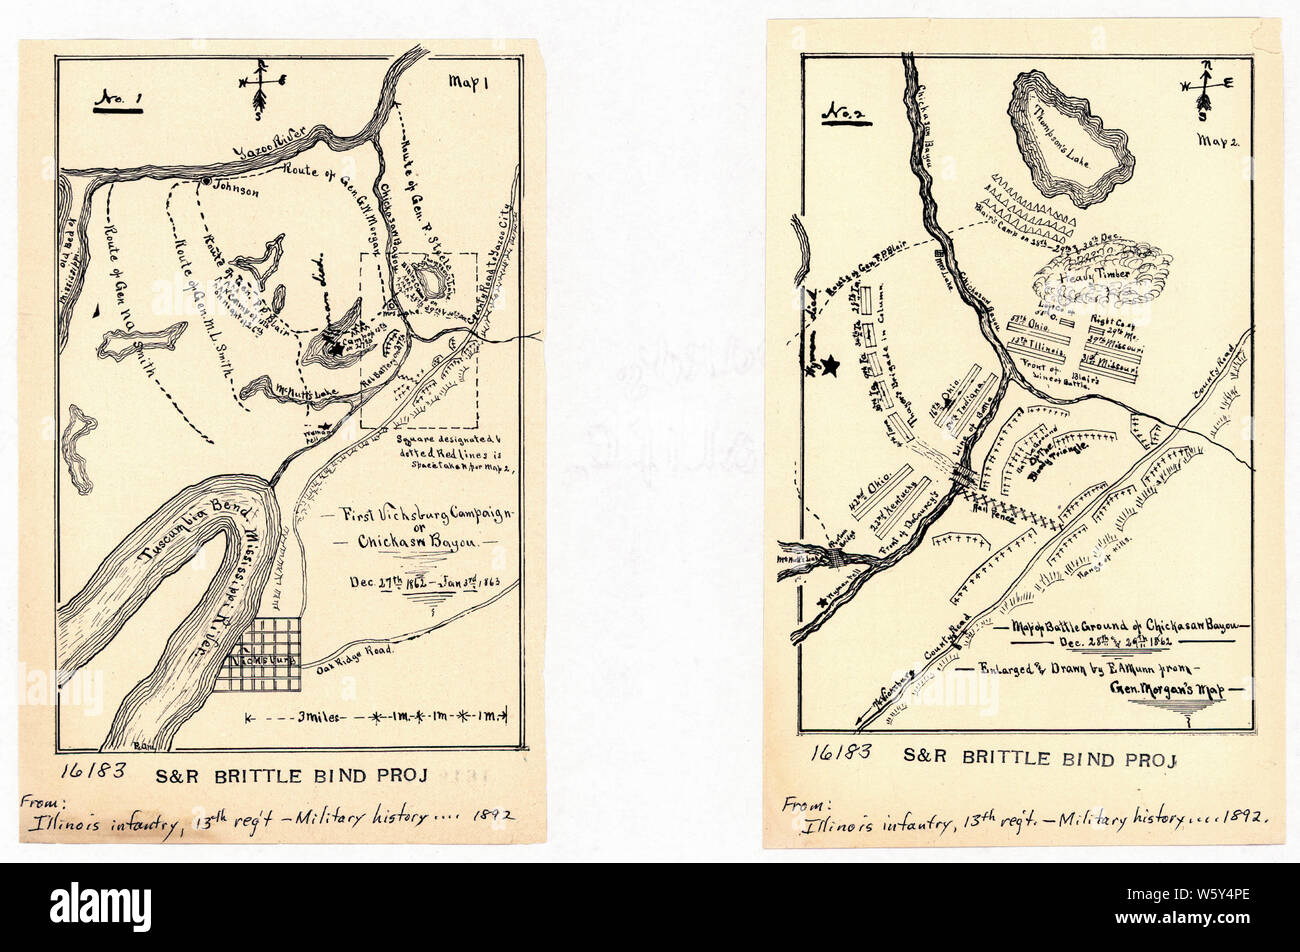 Civil War Maps 1193 No 1 First Vicksburg campaign or Chicksaw sic Bayou Dec 27th 1862-Jan 3rd 1863-No 2 Map of battle ground of Chickasaw Bayou Dec 28th and 29th 1862 Rebuild and Repair Stock Photo